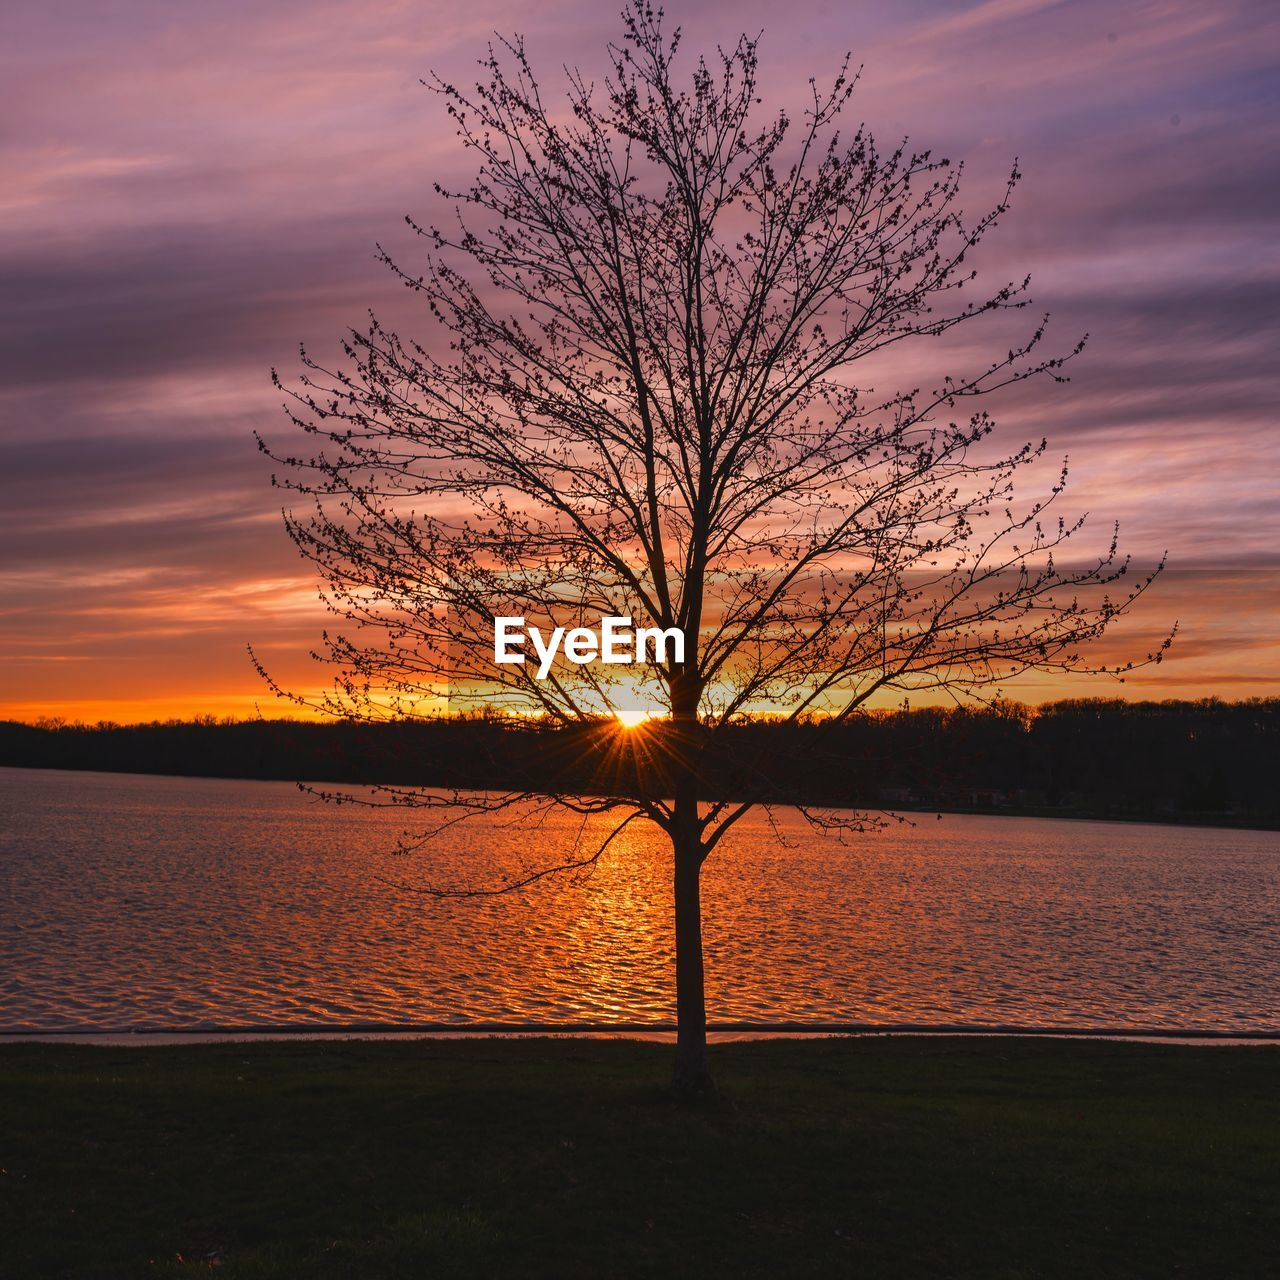 sunset, sky, beauty in nature, scenics - nature, orange color, tranquil scene, bare tree, tree, silhouette, tranquility, water, plant, cloud - sky, nature, lake, no people, idyllic, non-urban scene, branch, outdoors, isolated